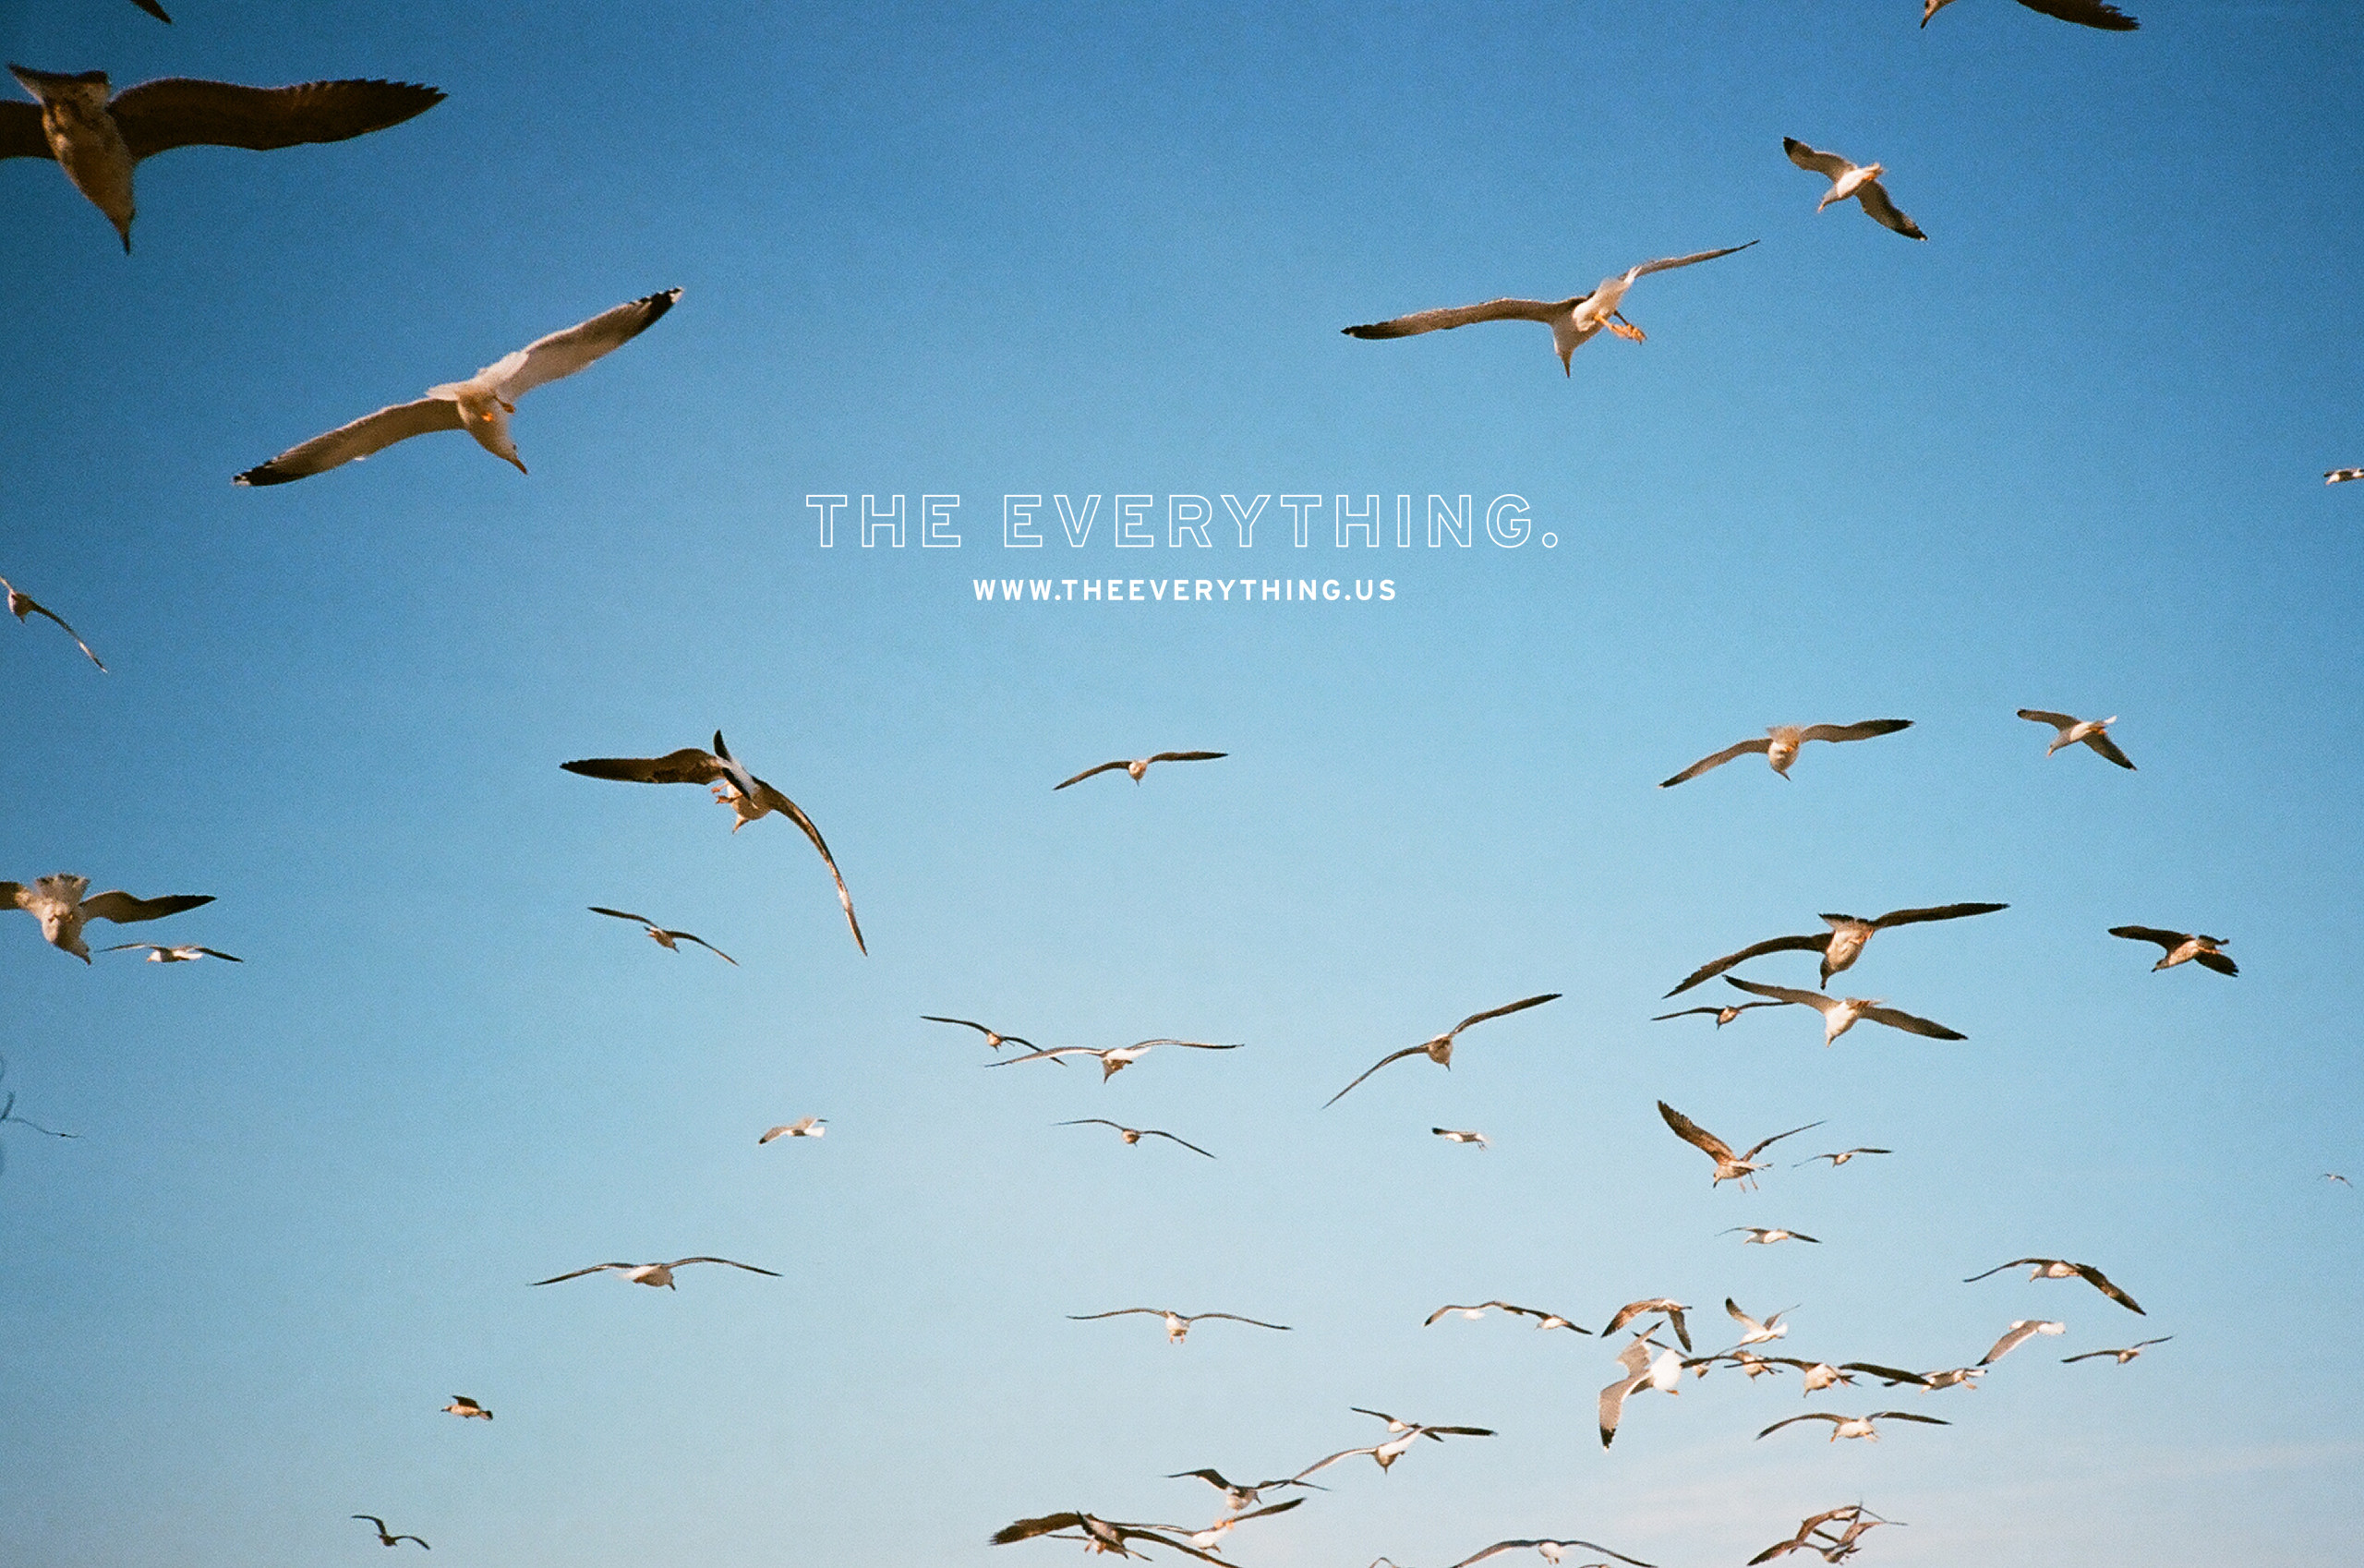 THE EVERYTHING.